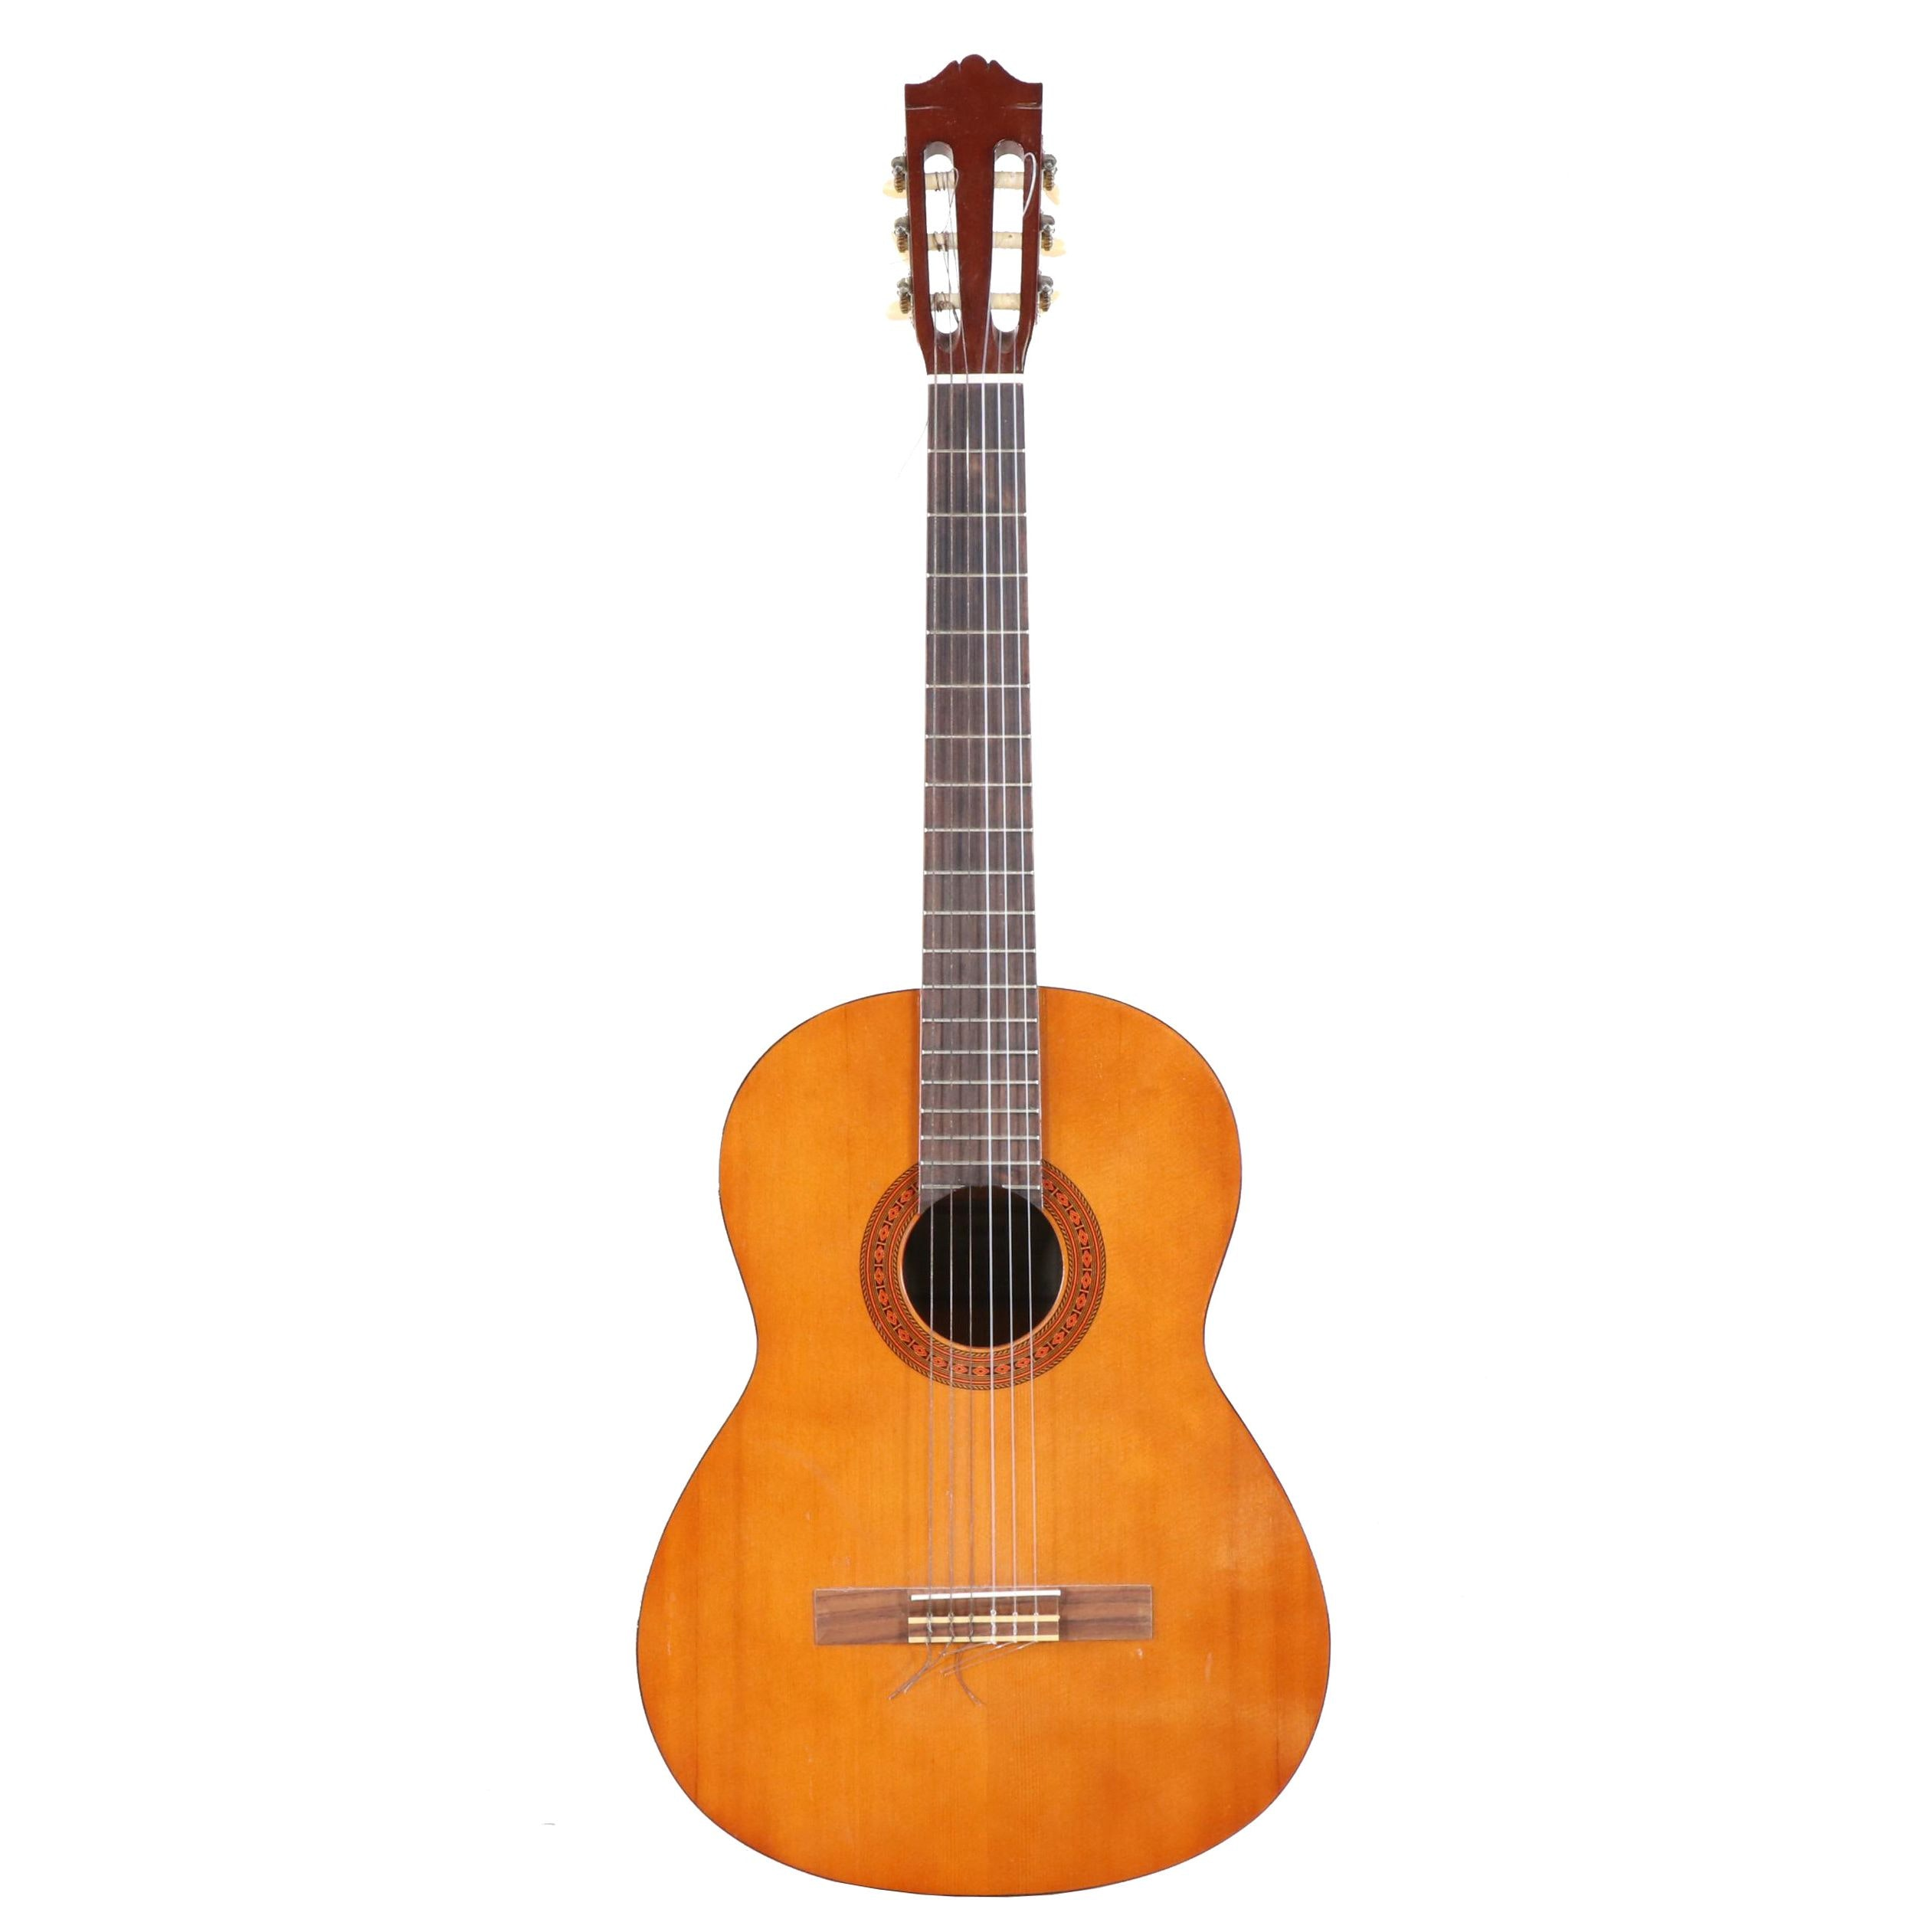 Yamaha C-40 Classical Acoustic Guitar in Natural Finish